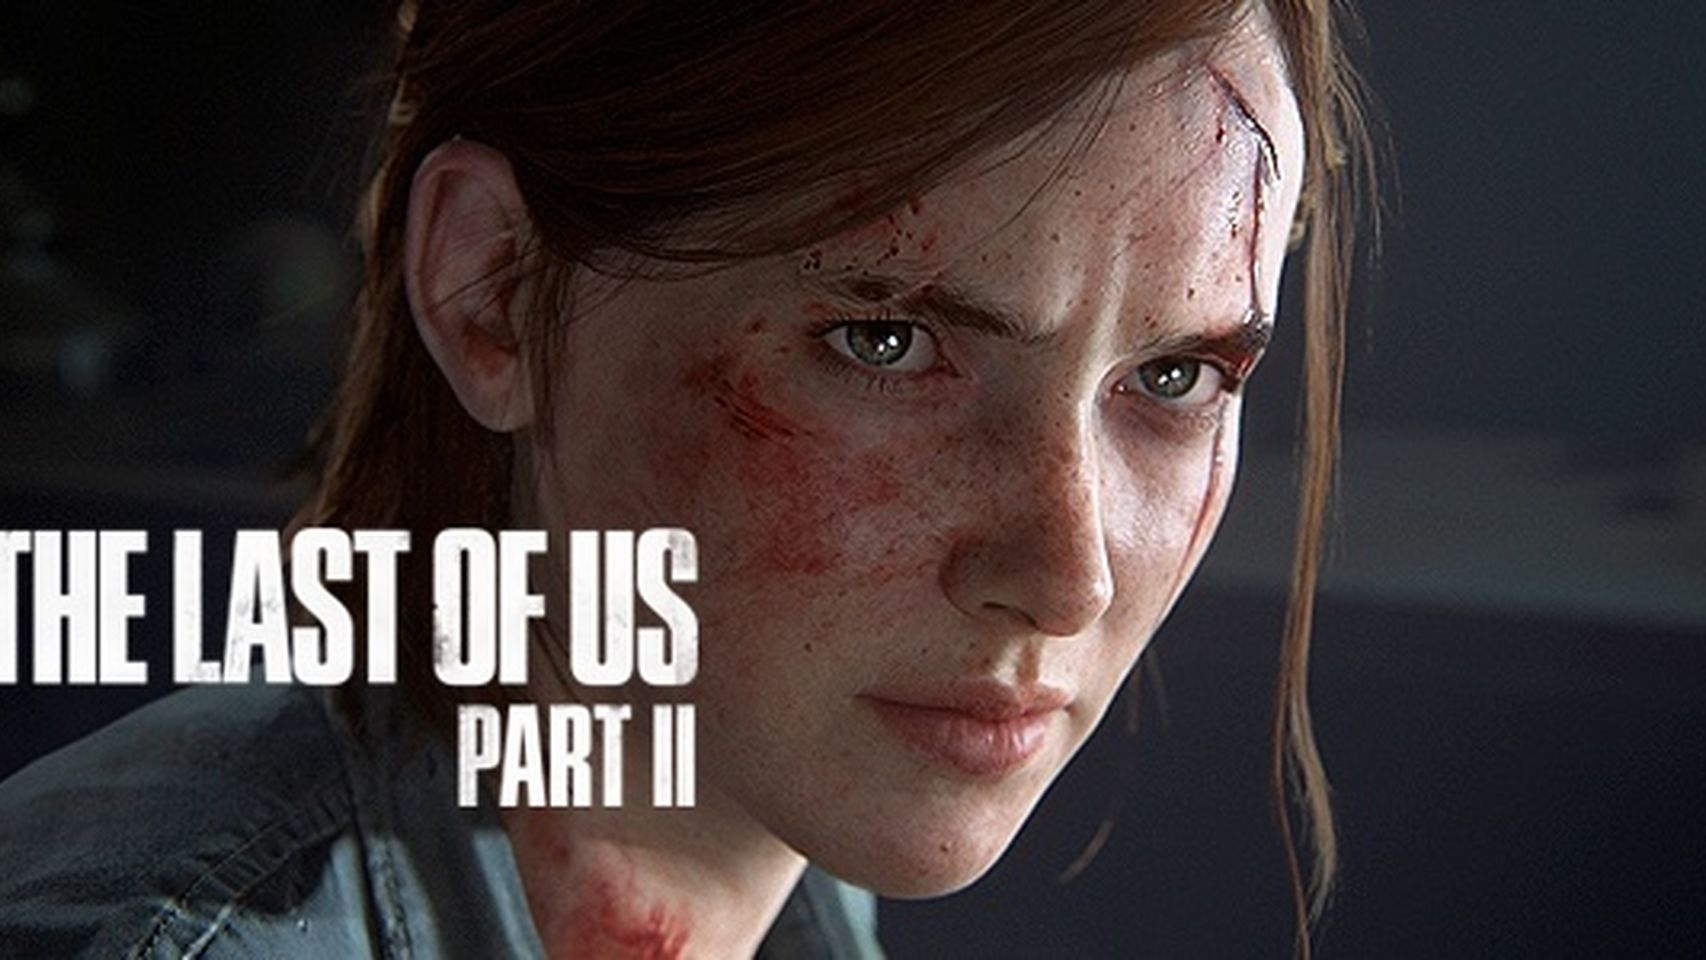 Ellie no siempre viajará sola en The Last of Us: Part 2